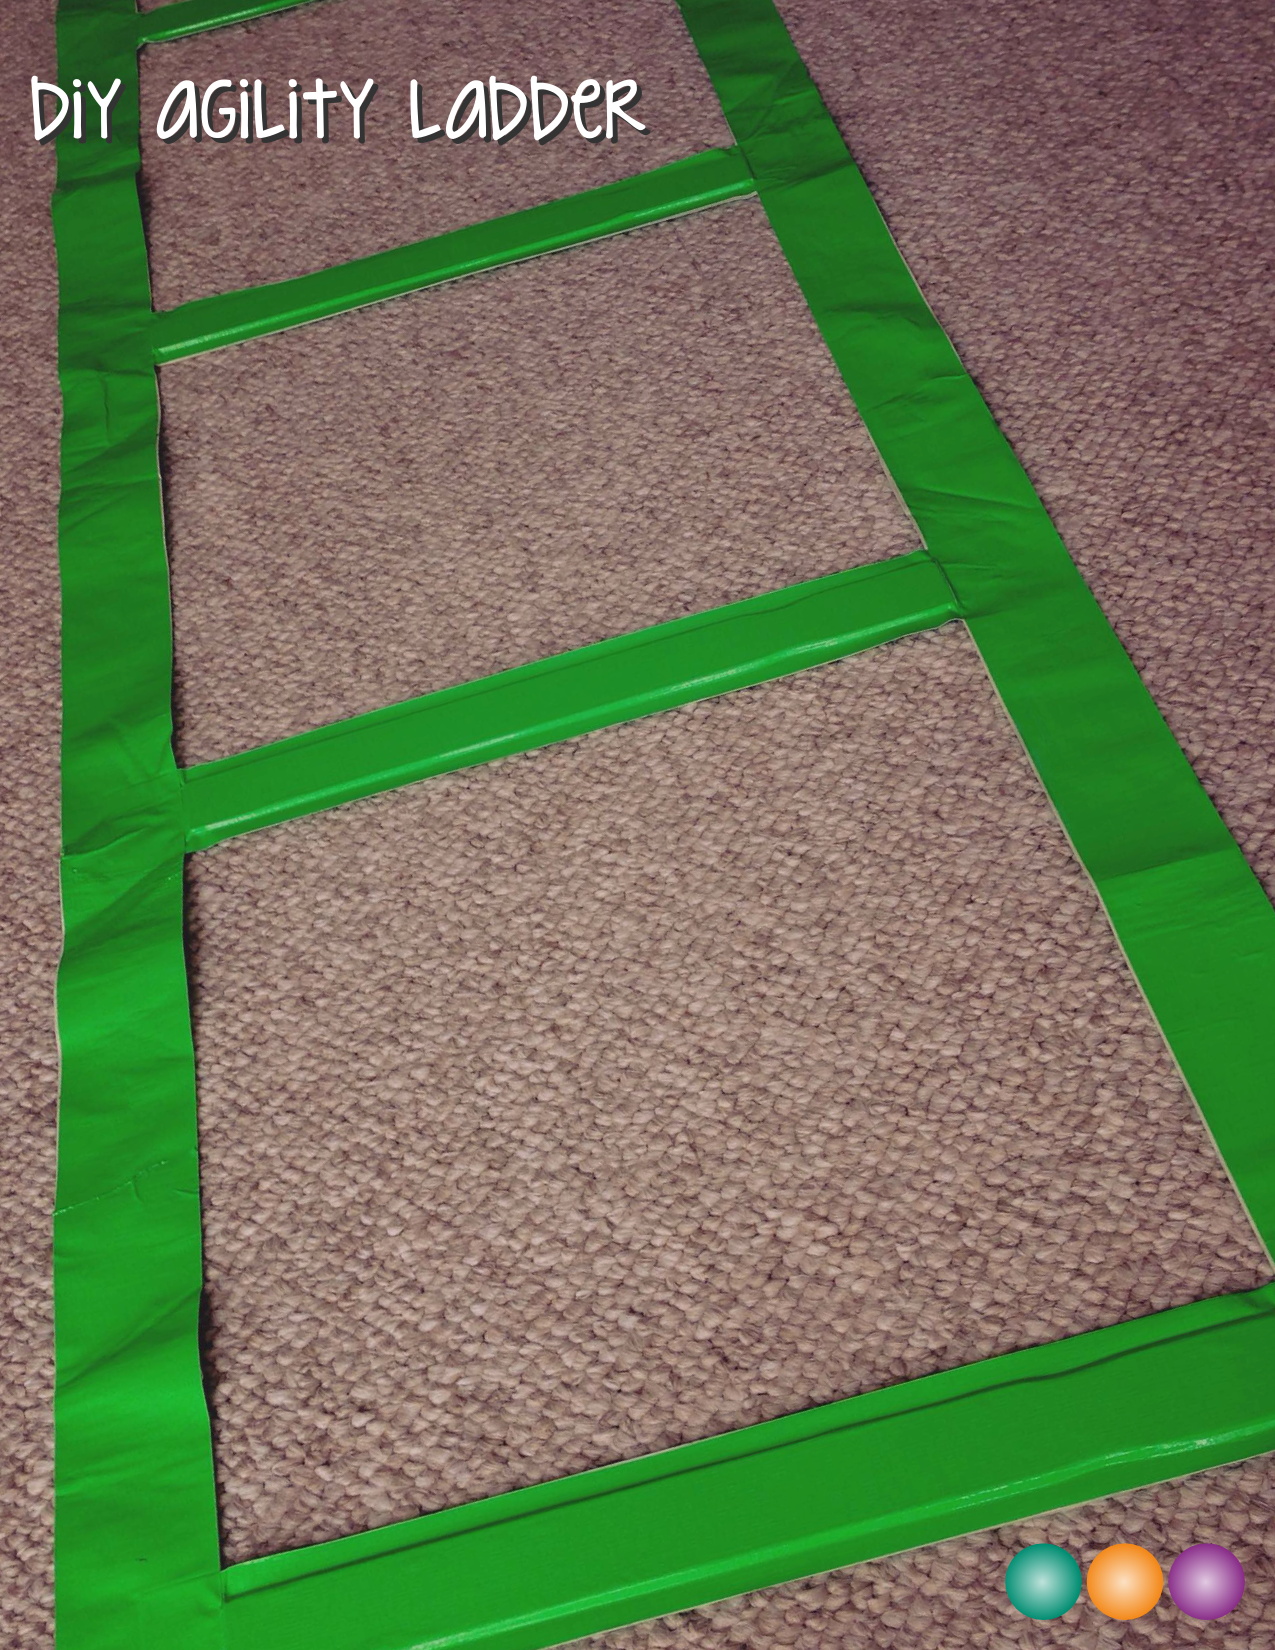 Save Your Green And Make An Agility Ladder For Free Agility Ladder Diy Home Gym Agile